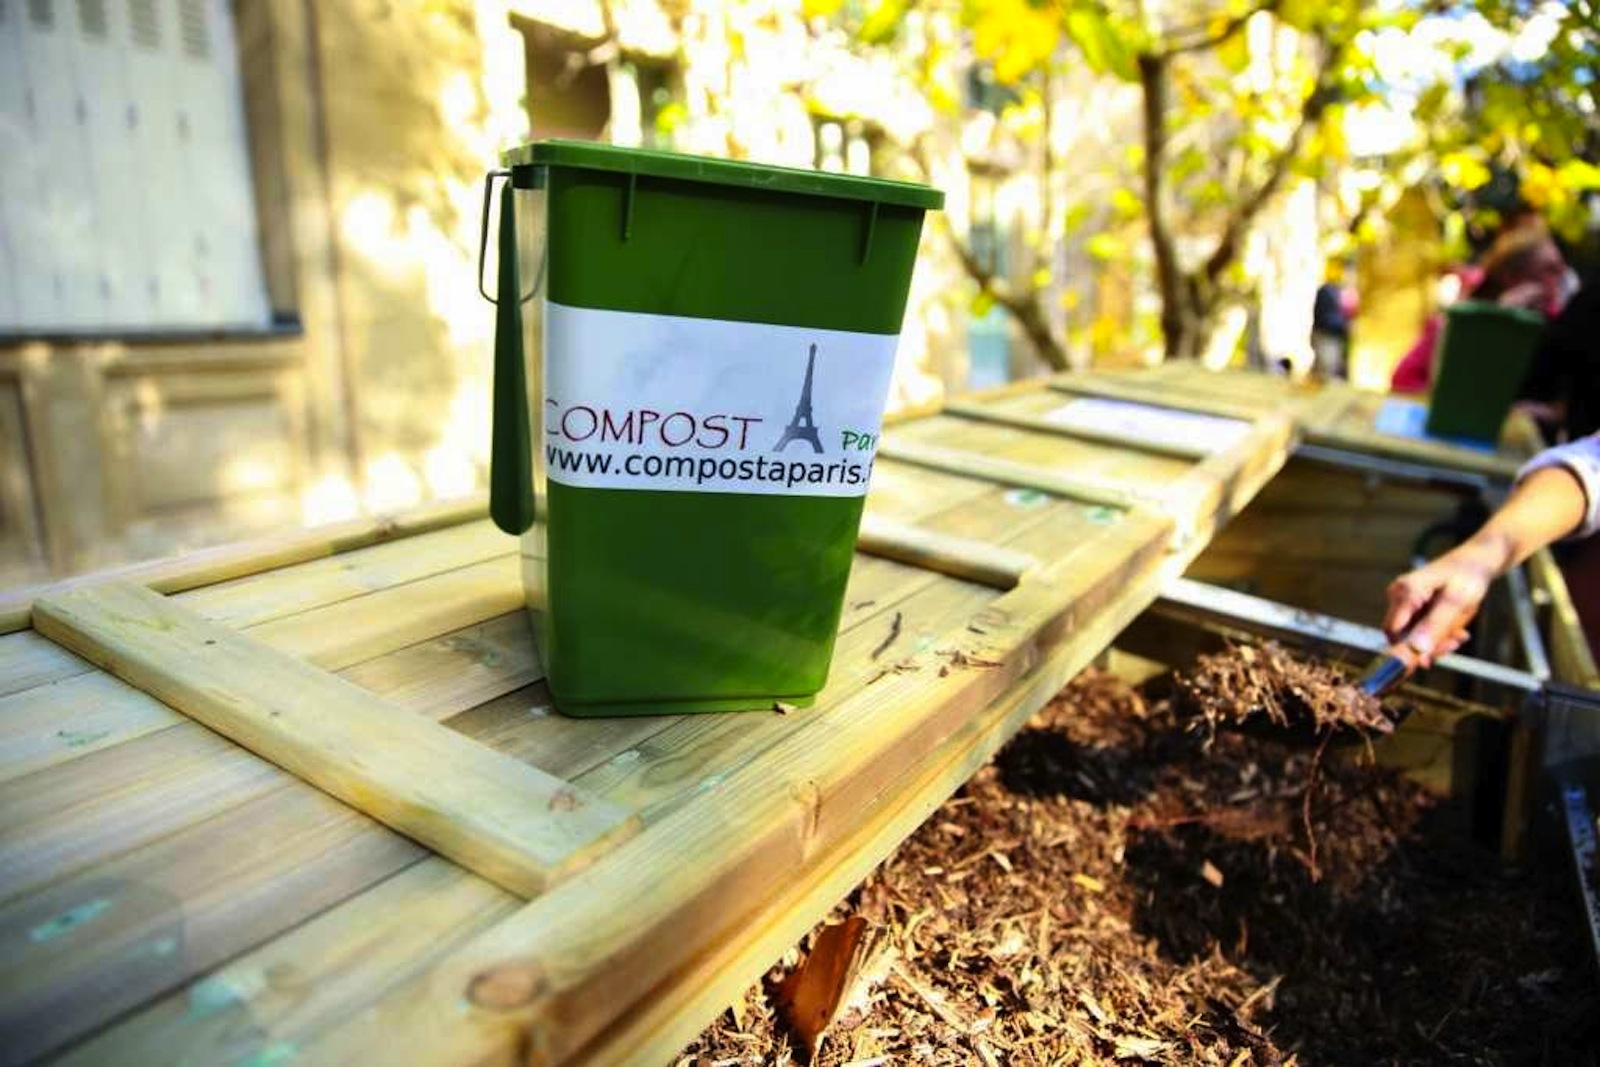 Composting in Paris: Community Gardens and Neighborhood Compost Bins